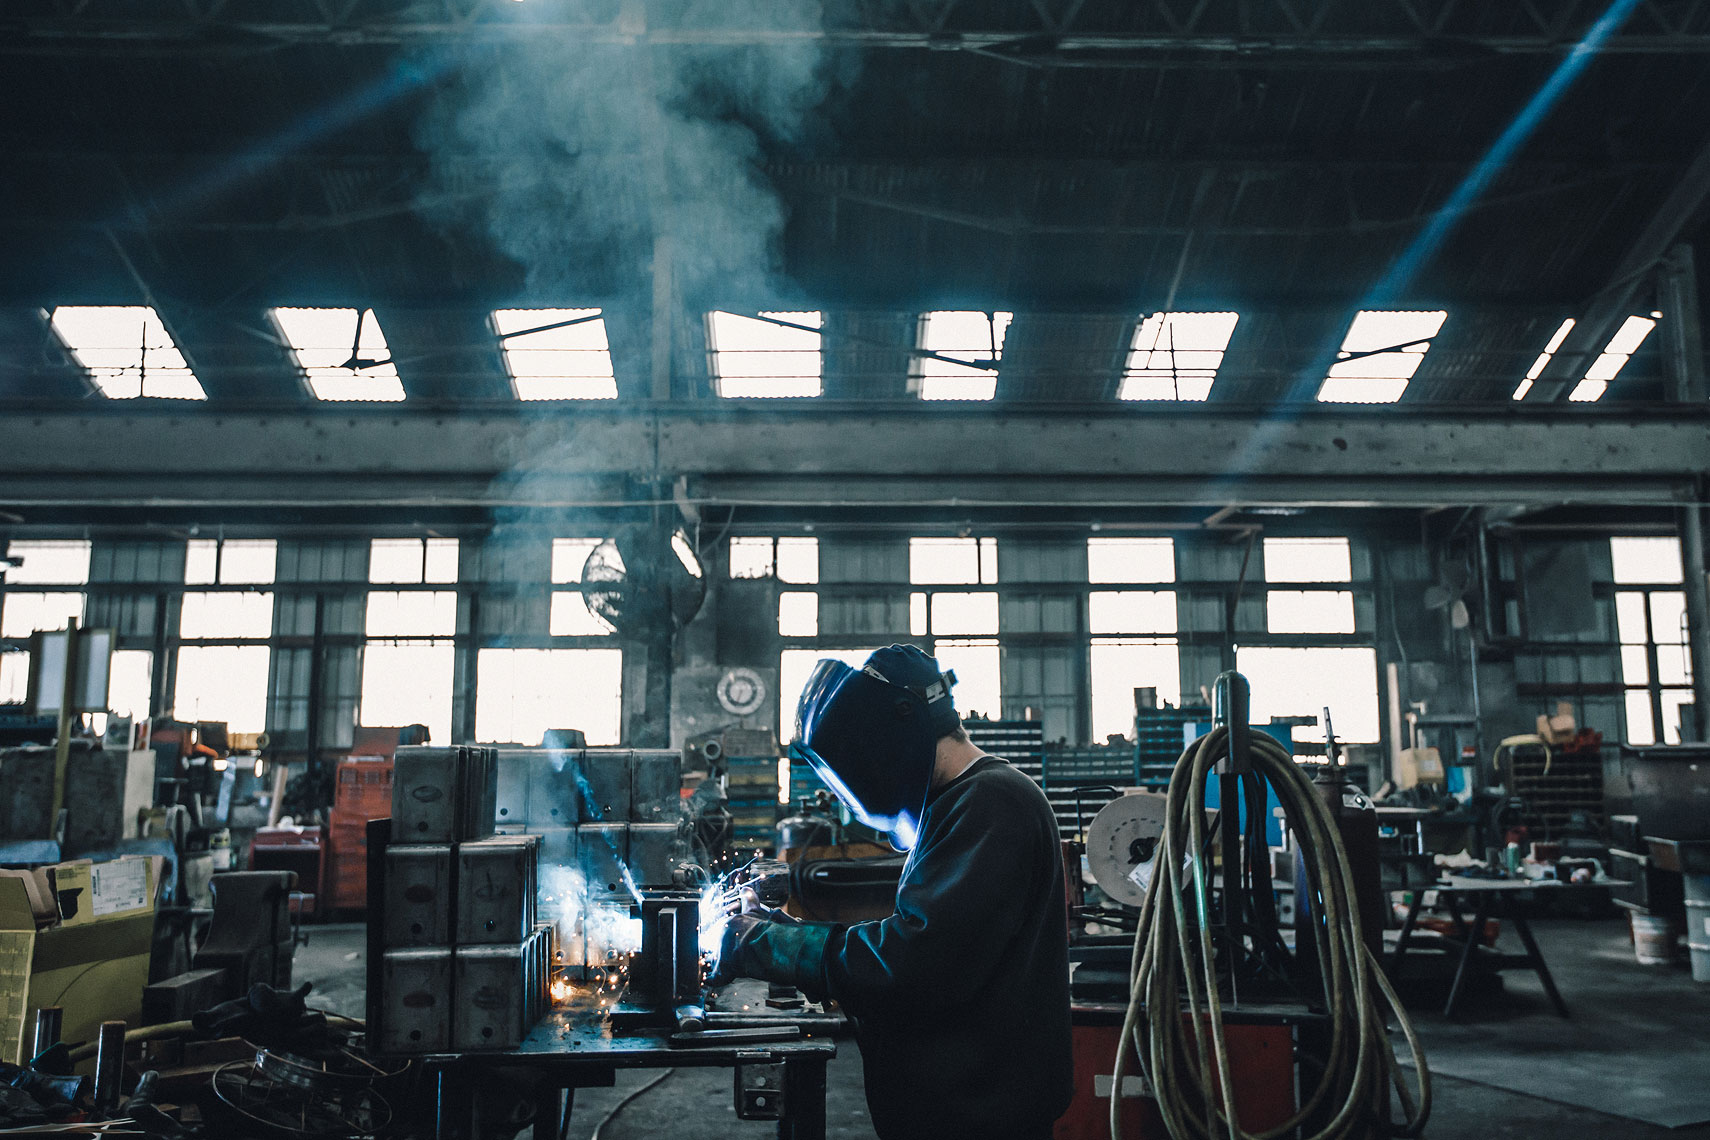 Factory Welder  | Gamut | John Fedele Industrial Photography